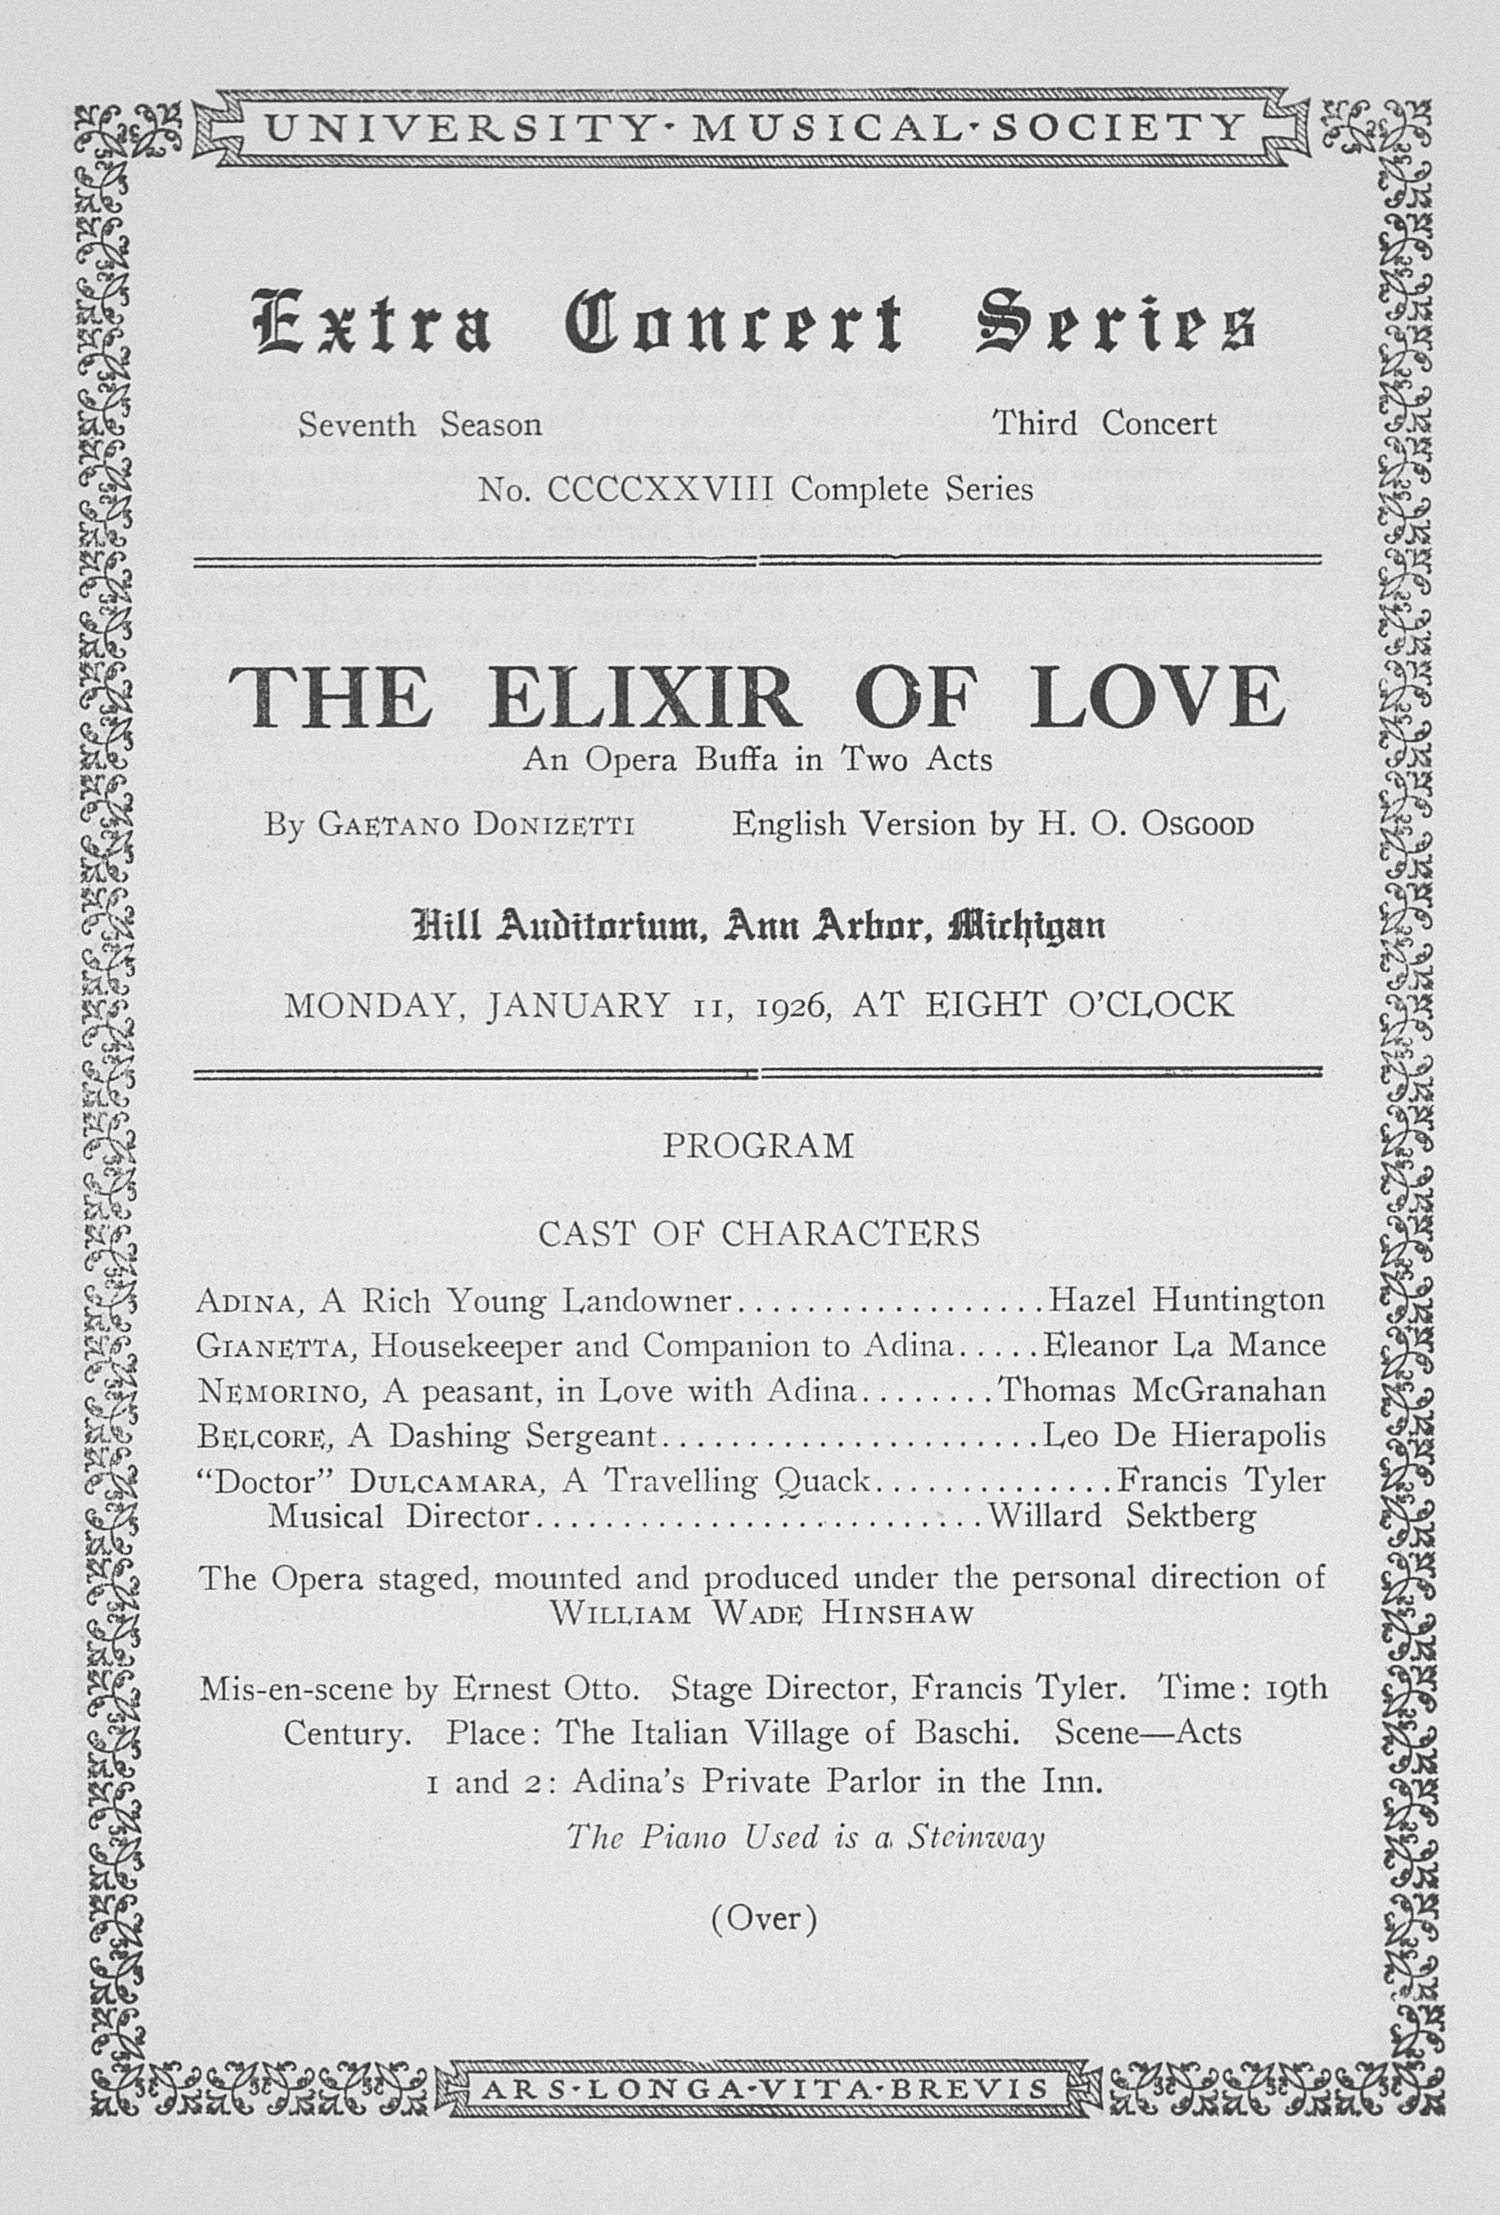 UMS Concert Program, January 11, 1926: Extra Concert Series -- The Elixir Of Love image